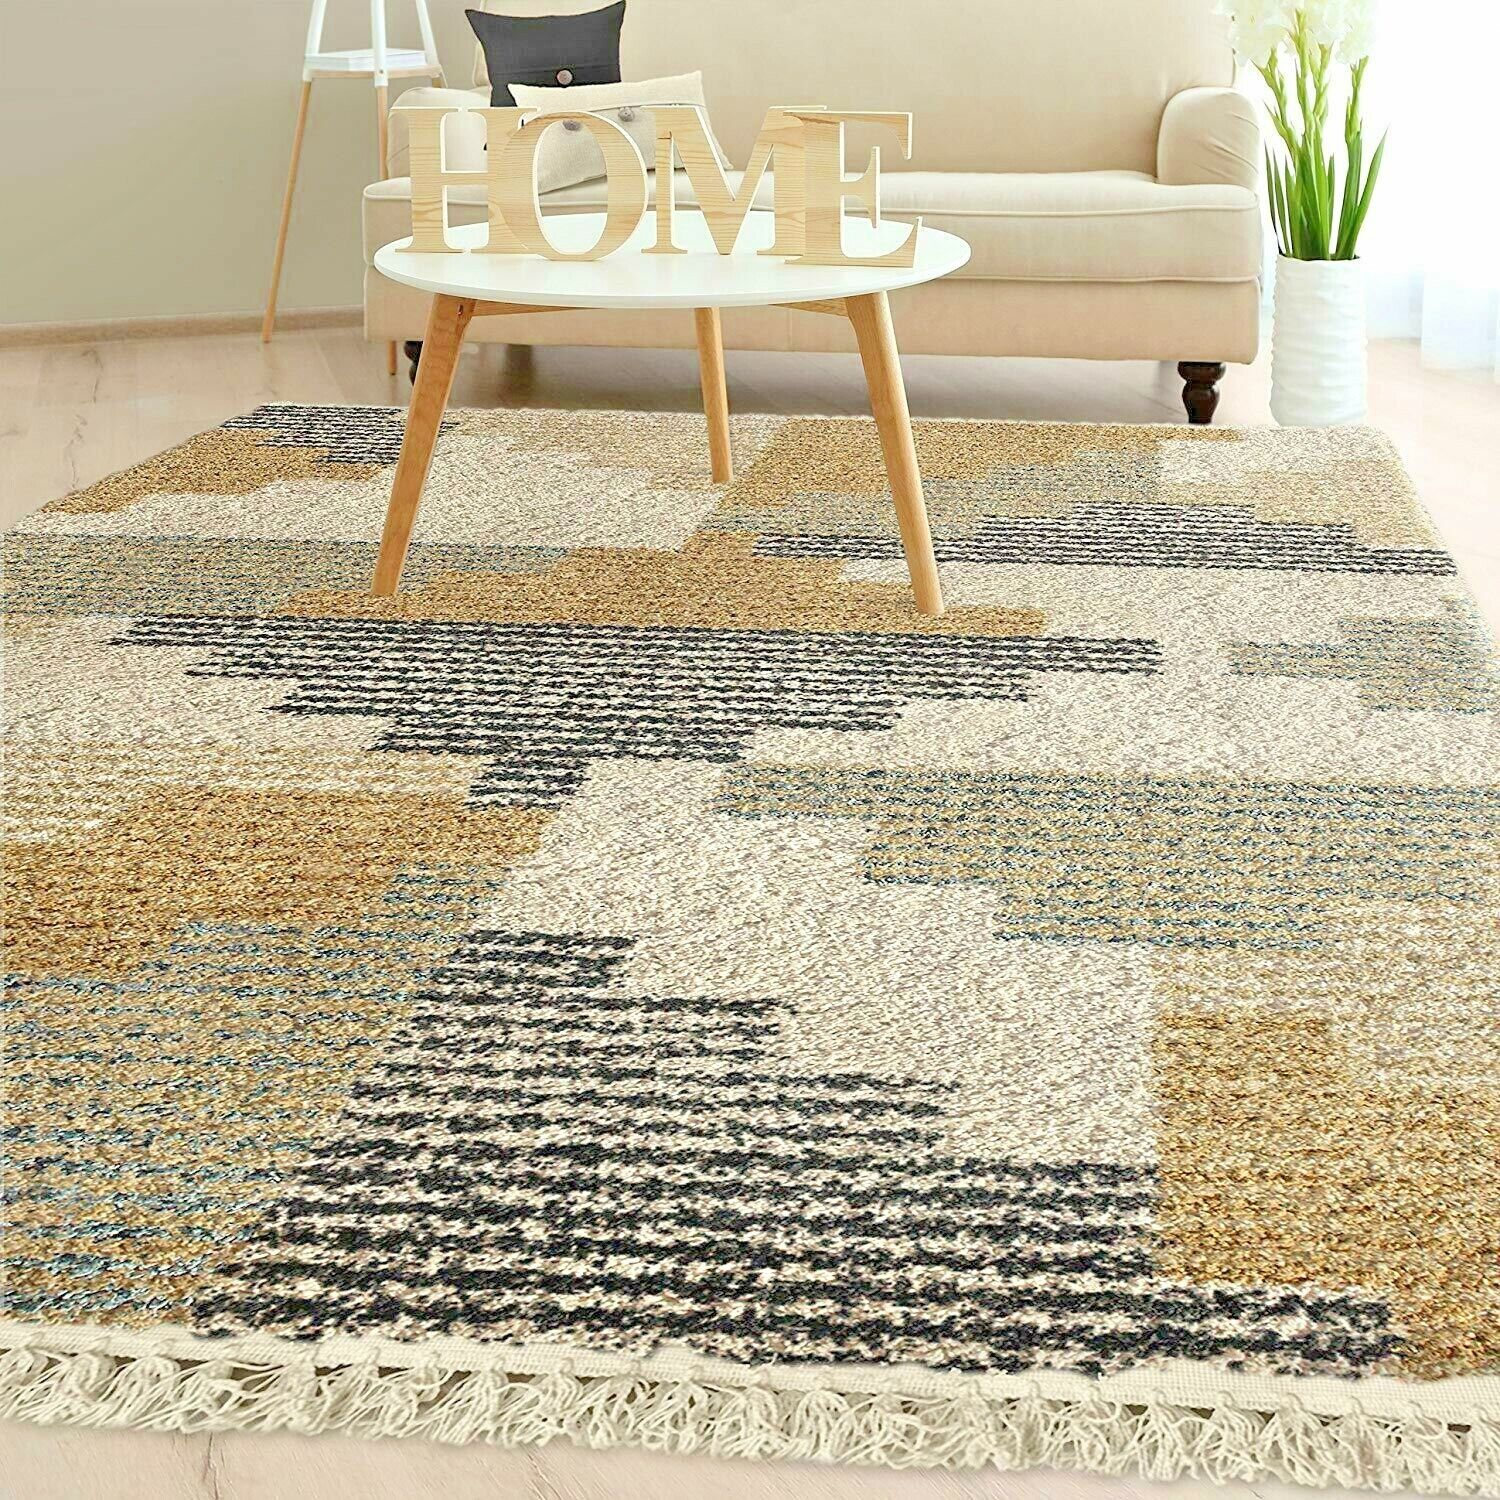 Living Room Rugs 5x7.Details About Rugs Area Rugs Carpets 8x10 Rug Floor 5x7 Modern Bedroom Large Living Room Rugs